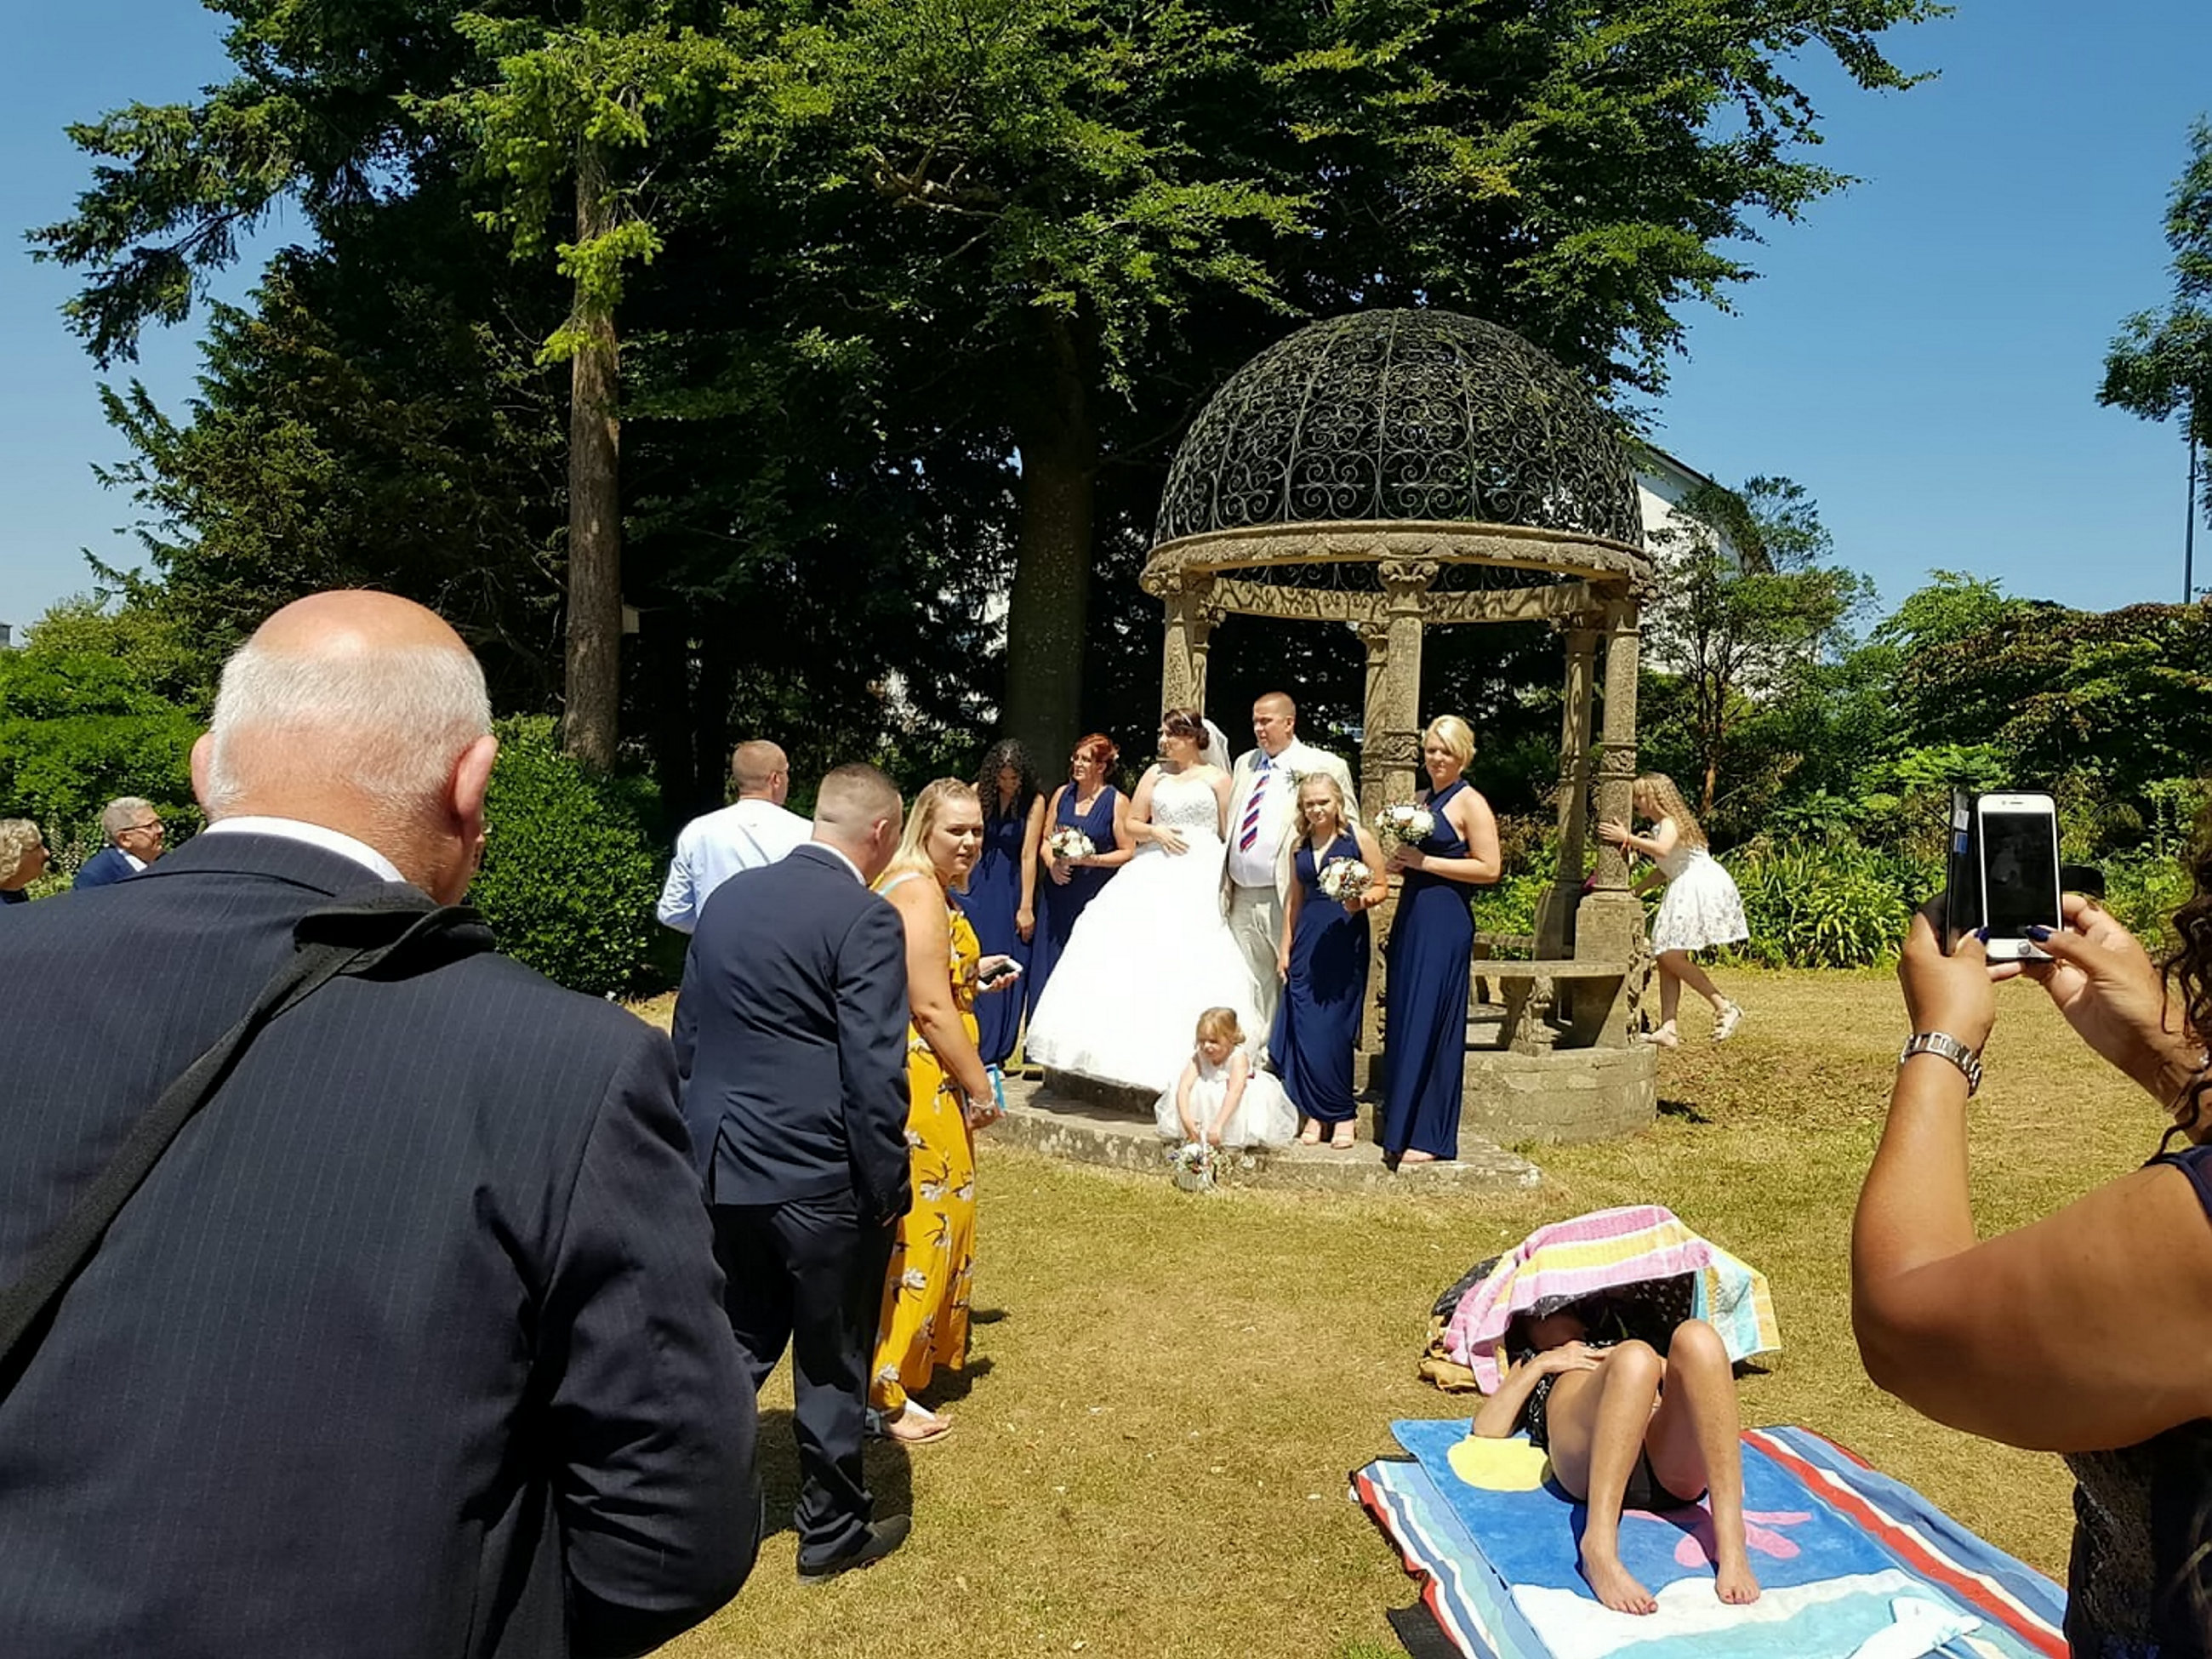 Sunbathing wedding